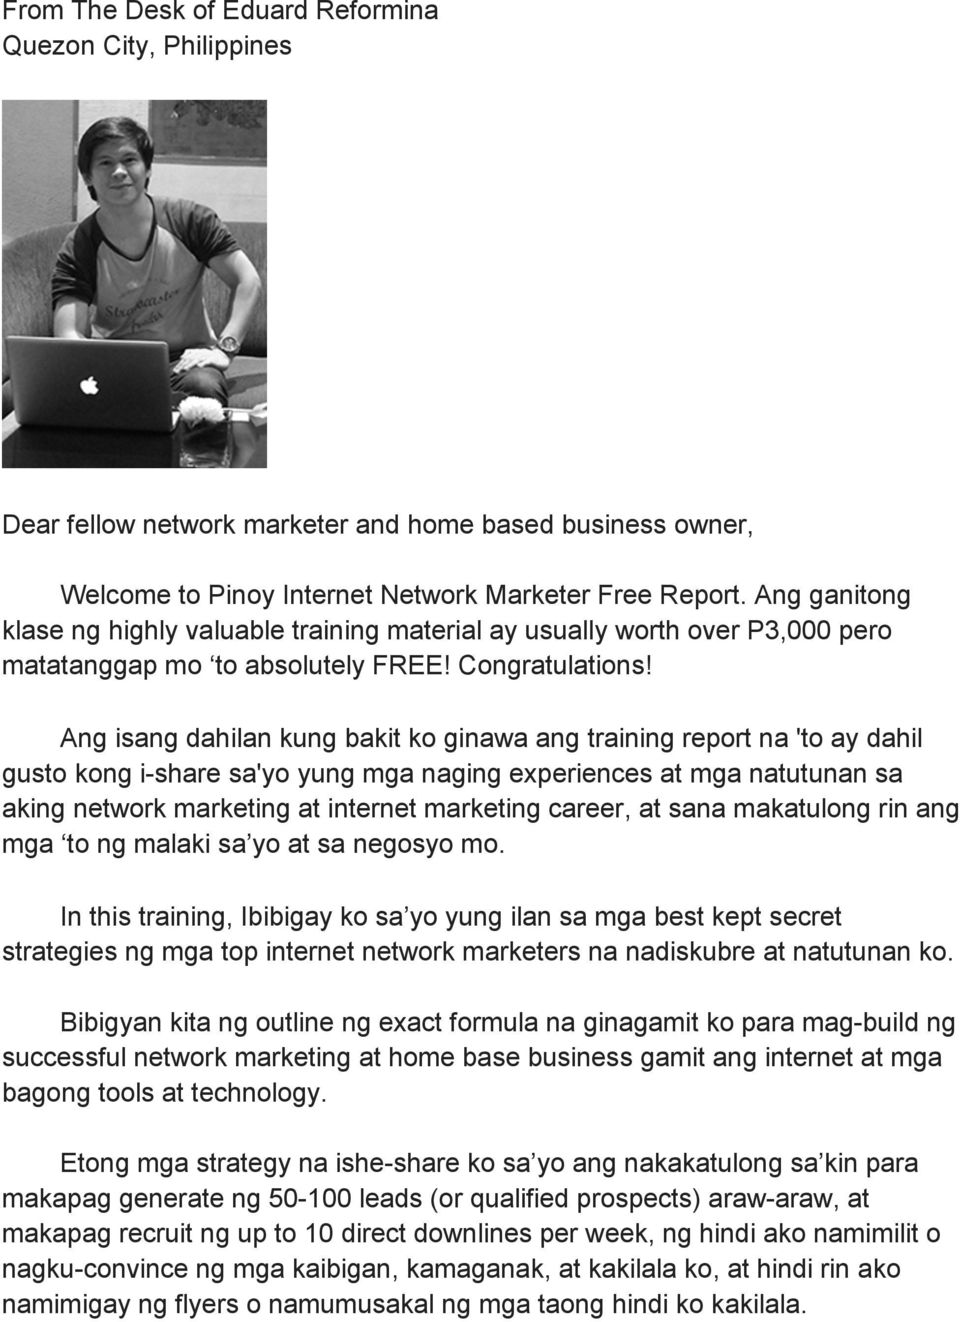 Ang isang dahilan kung bakit ko ginawa ang training report na 'to ay dahil gusto kong i-share sa'yo yung mga naging experiences at mga natutunan sa aking network marketing at internet marketing